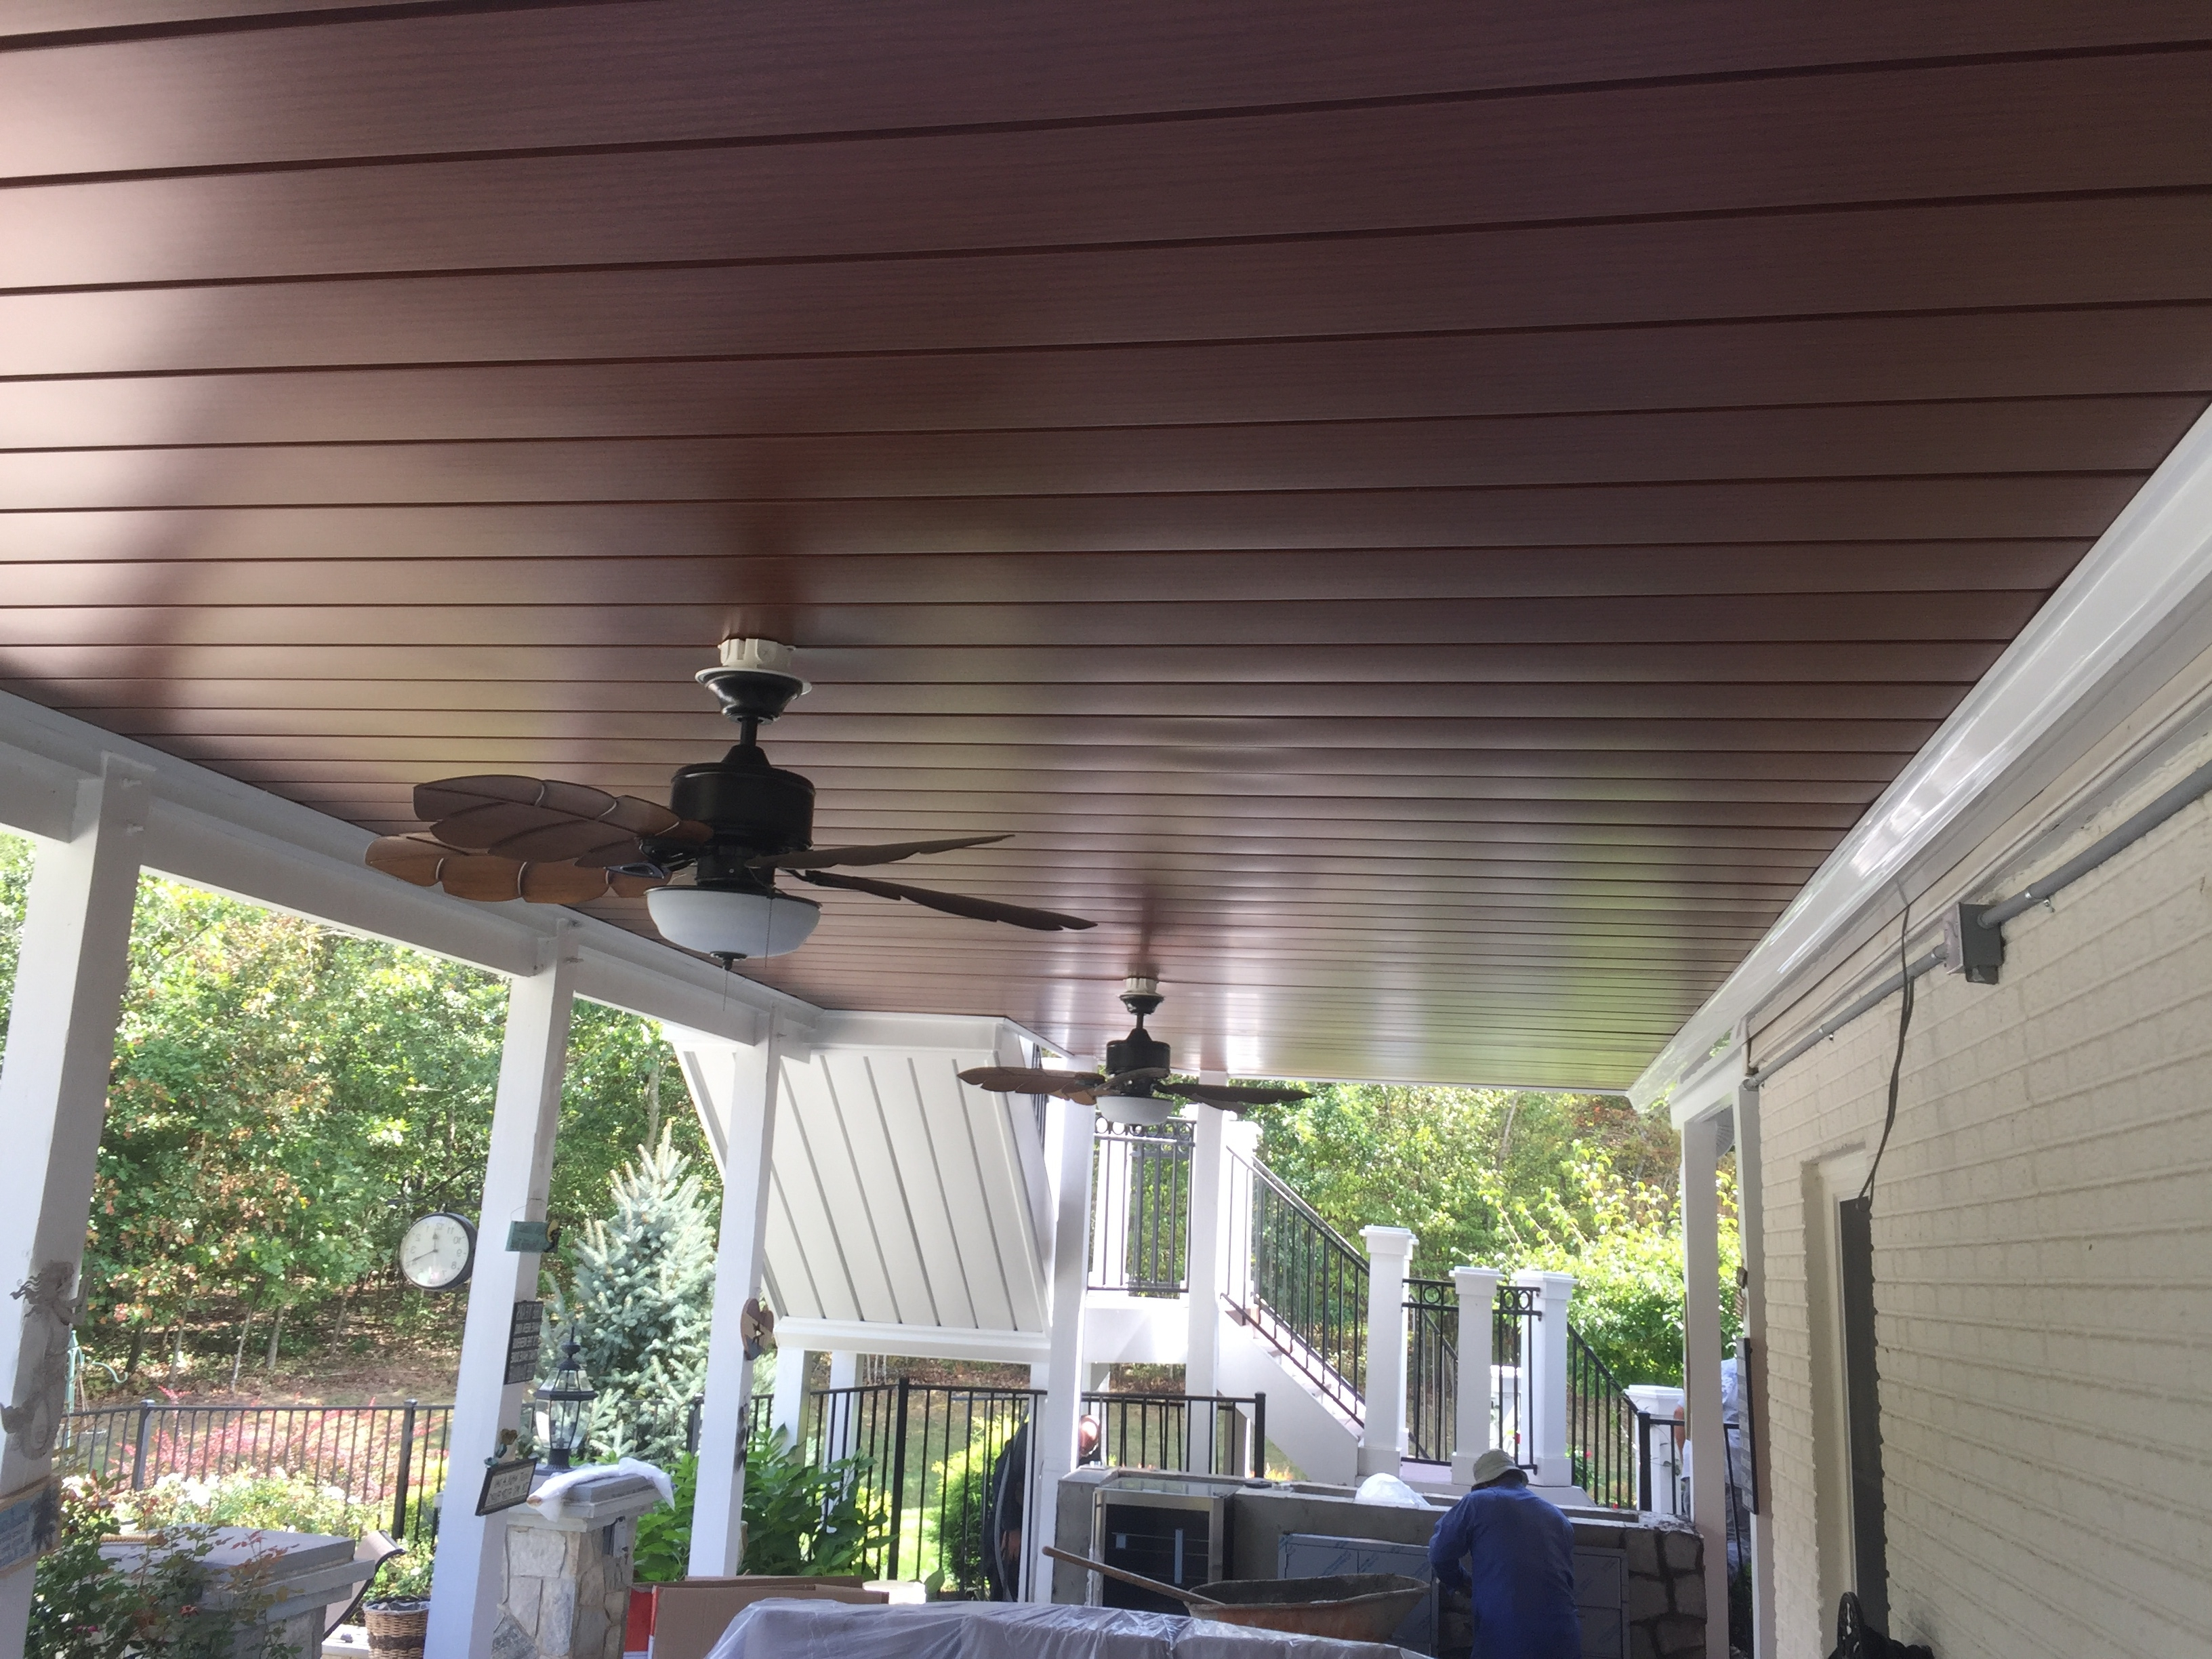 Install Outdoor Ceiling Fan Under Deck Www, Install Ceiling Fan For Preferred Outdoor Ceiling Fan Under Deck (View 5 of 20)